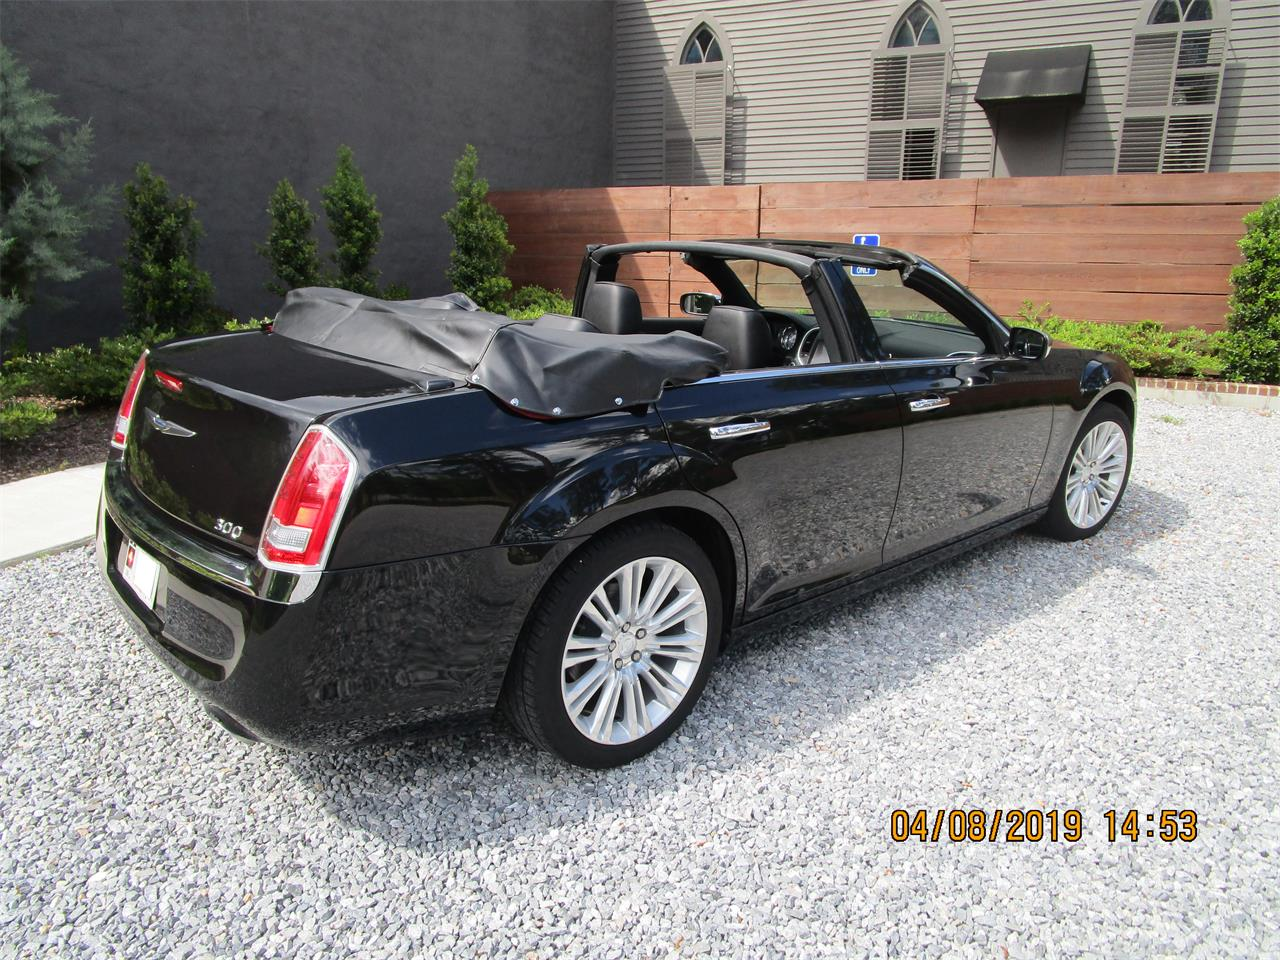 2011 Chrysler 300 for sale in Summit, MS – photo 6